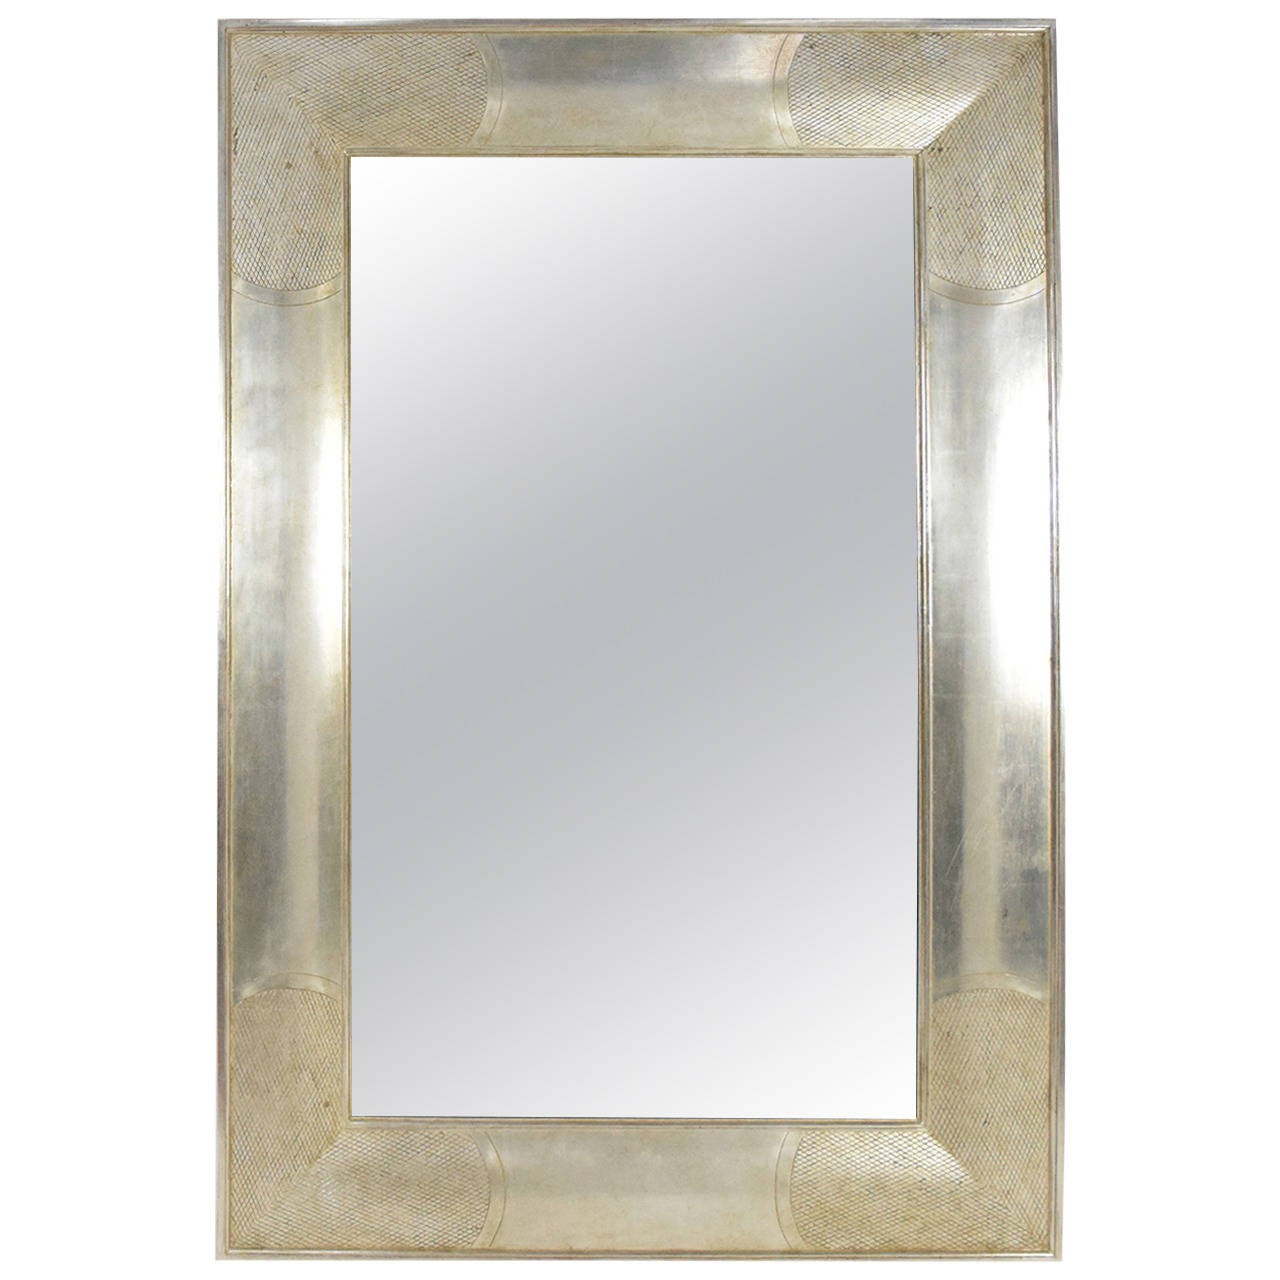 Large j robert scott english ii mirror in silver leaf at for Big silver mirror